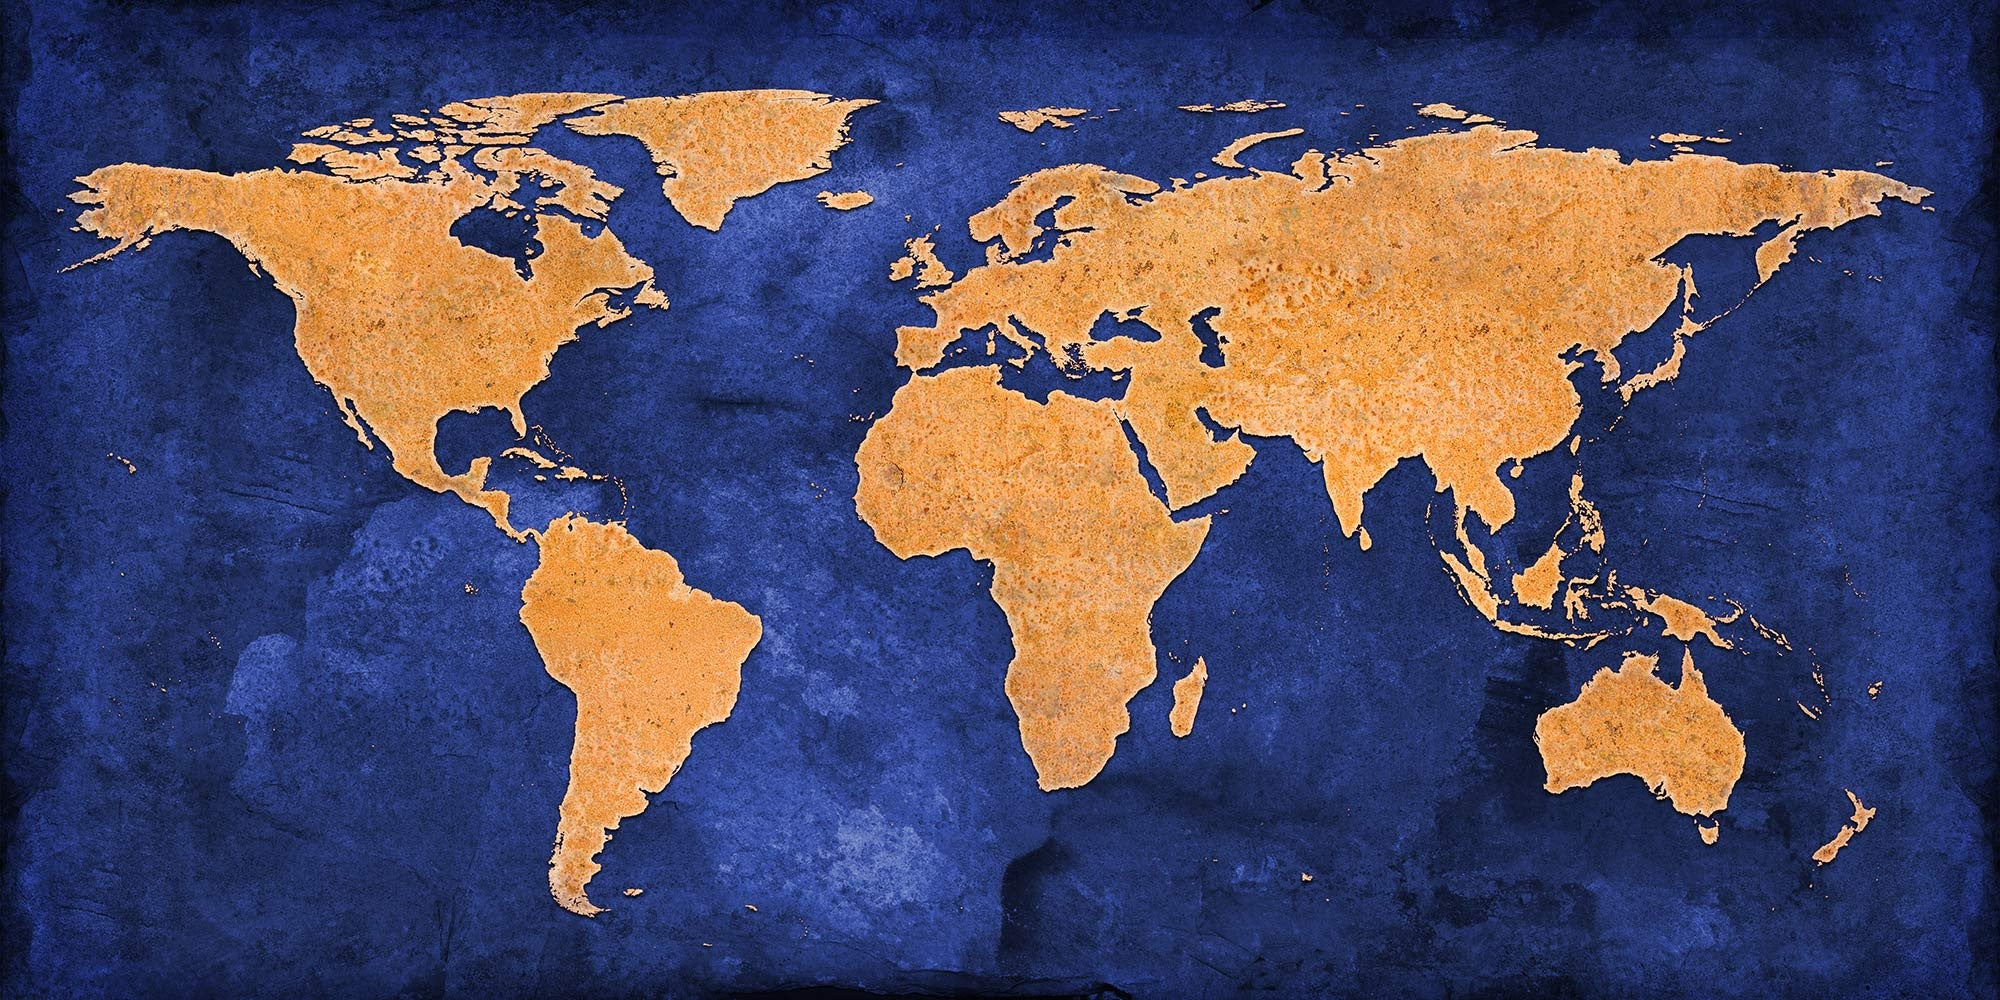 Blue and gold grunge world map canvas wall print lets get shirty blue and gold grunge world map canvas wall print custom t shirt by lets get shirty gumiabroncs Images